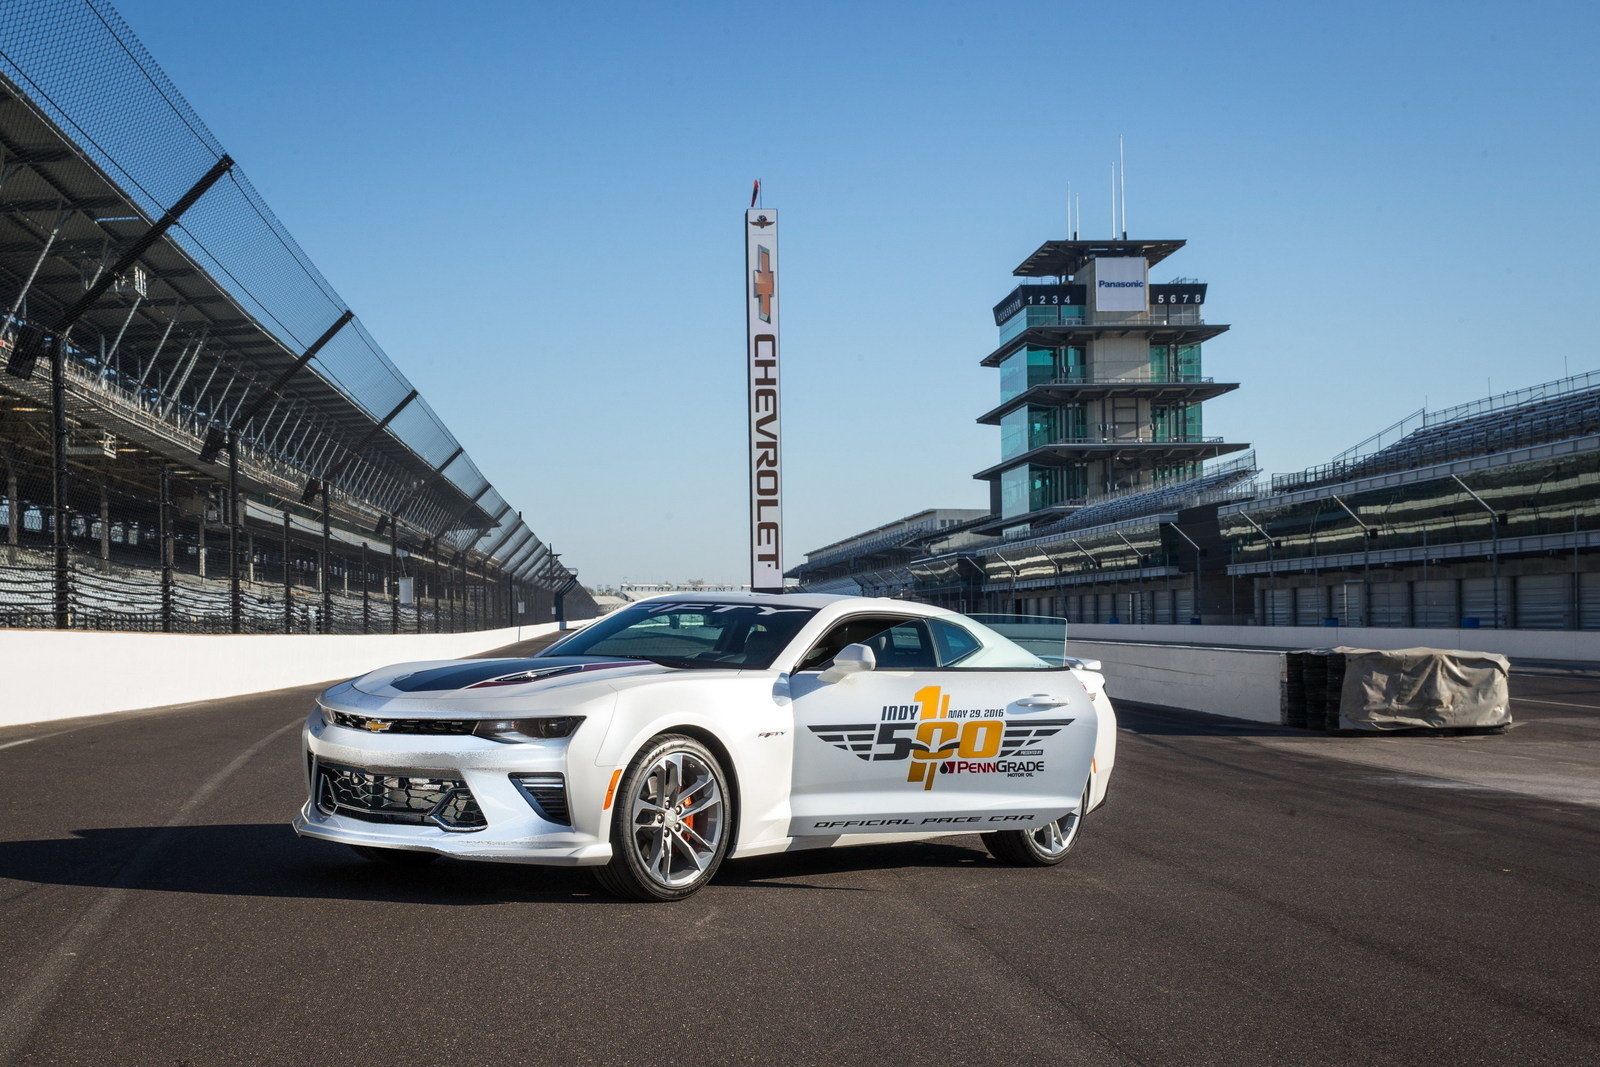 2016 chevrolet camaro ss indy 500 pace car picture 673176 car review top speed. Black Bedroom Furniture Sets. Home Design Ideas